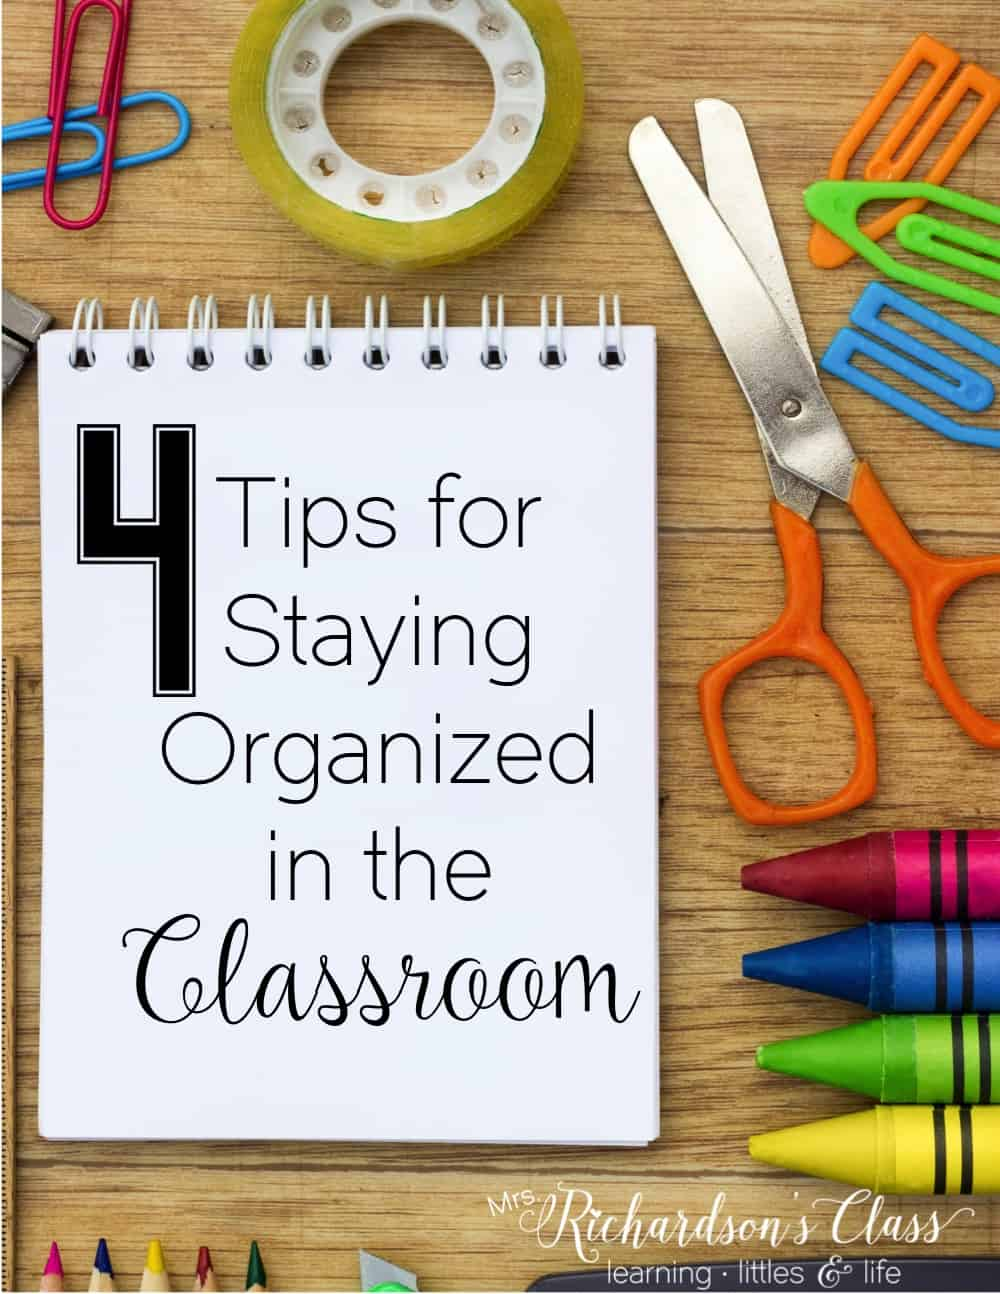 Do you struggle to stay organized in the classroom? These 4 tips are sure to help you keep your classroom organized!